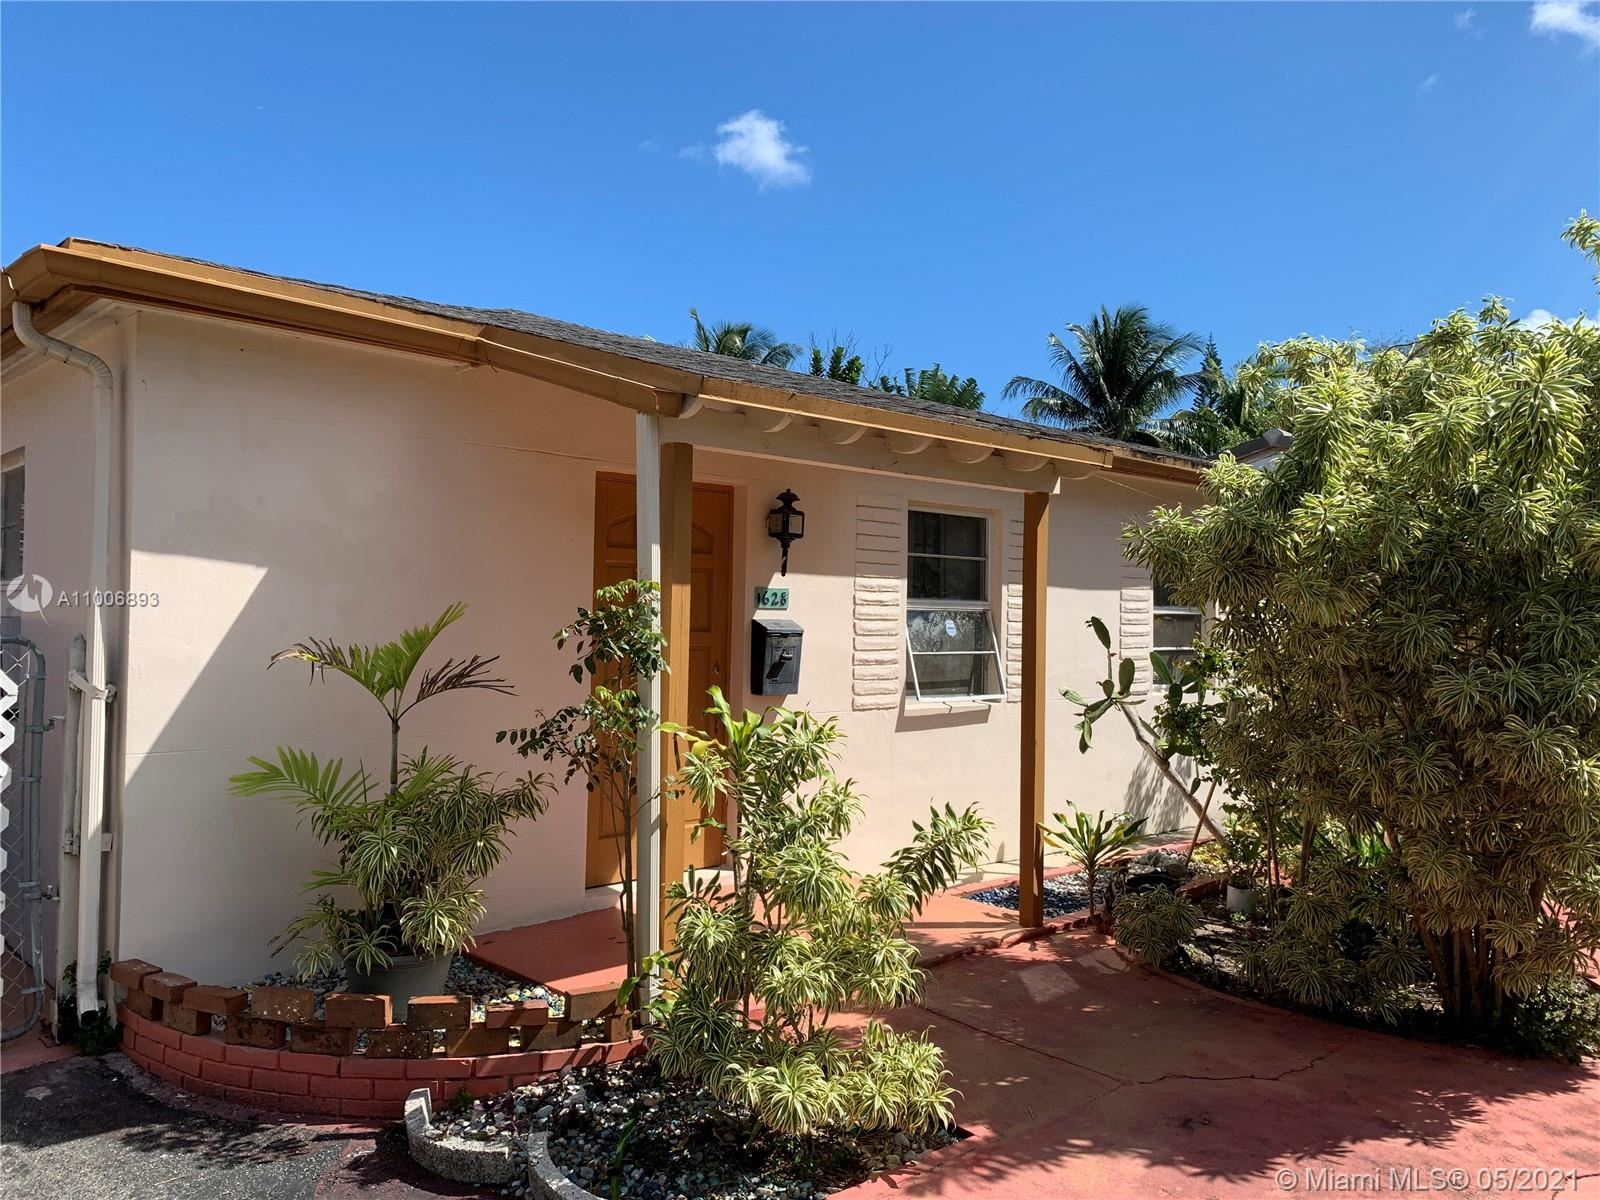 1628 NW 5th Ave, Fort Lauderdale, FL 33311 - #: A11006893